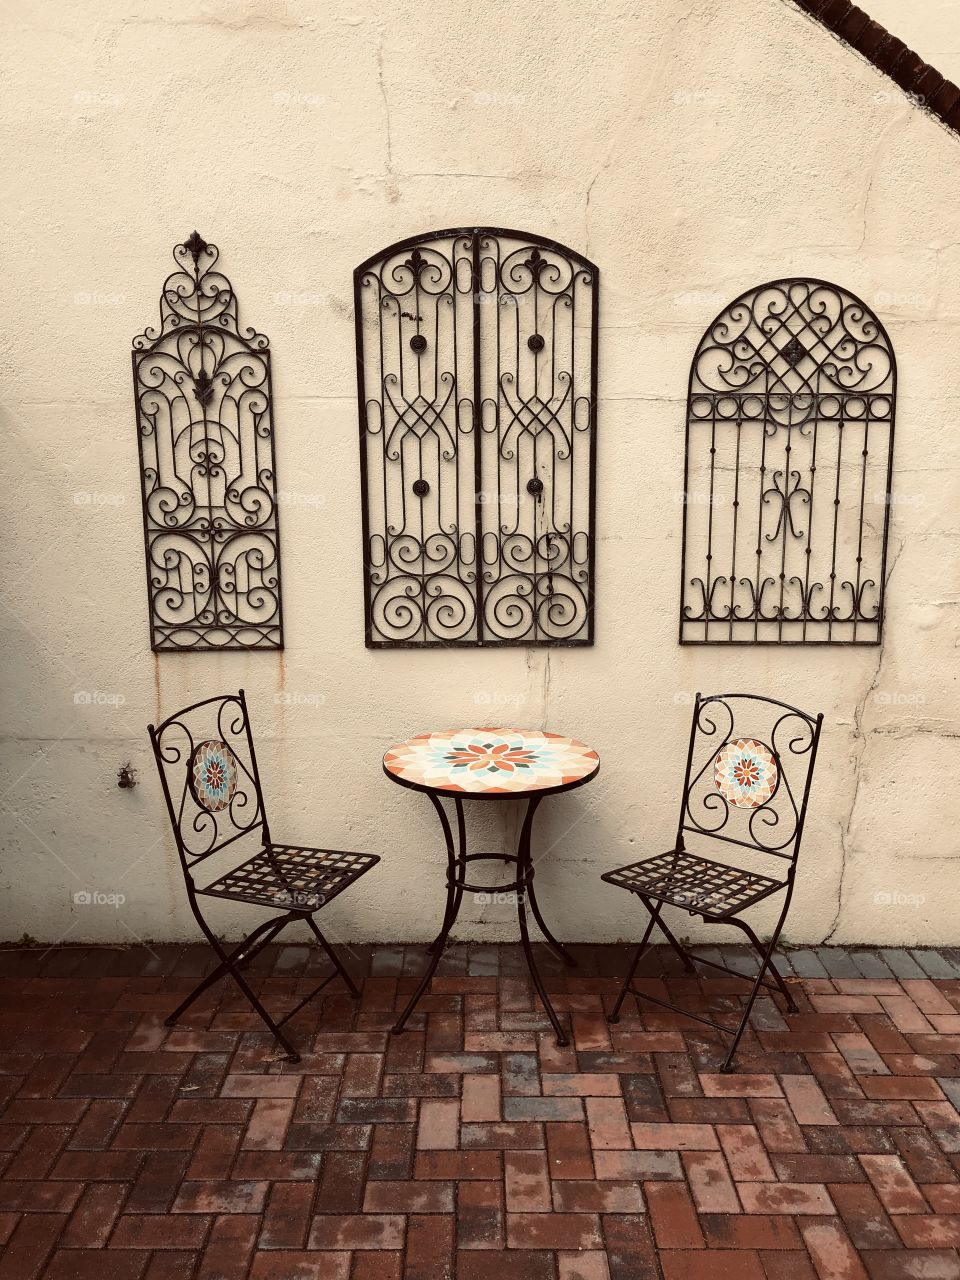 Favorite Spot At Home, Mosaic Outdoor Patio Furniture, Outdoor Space